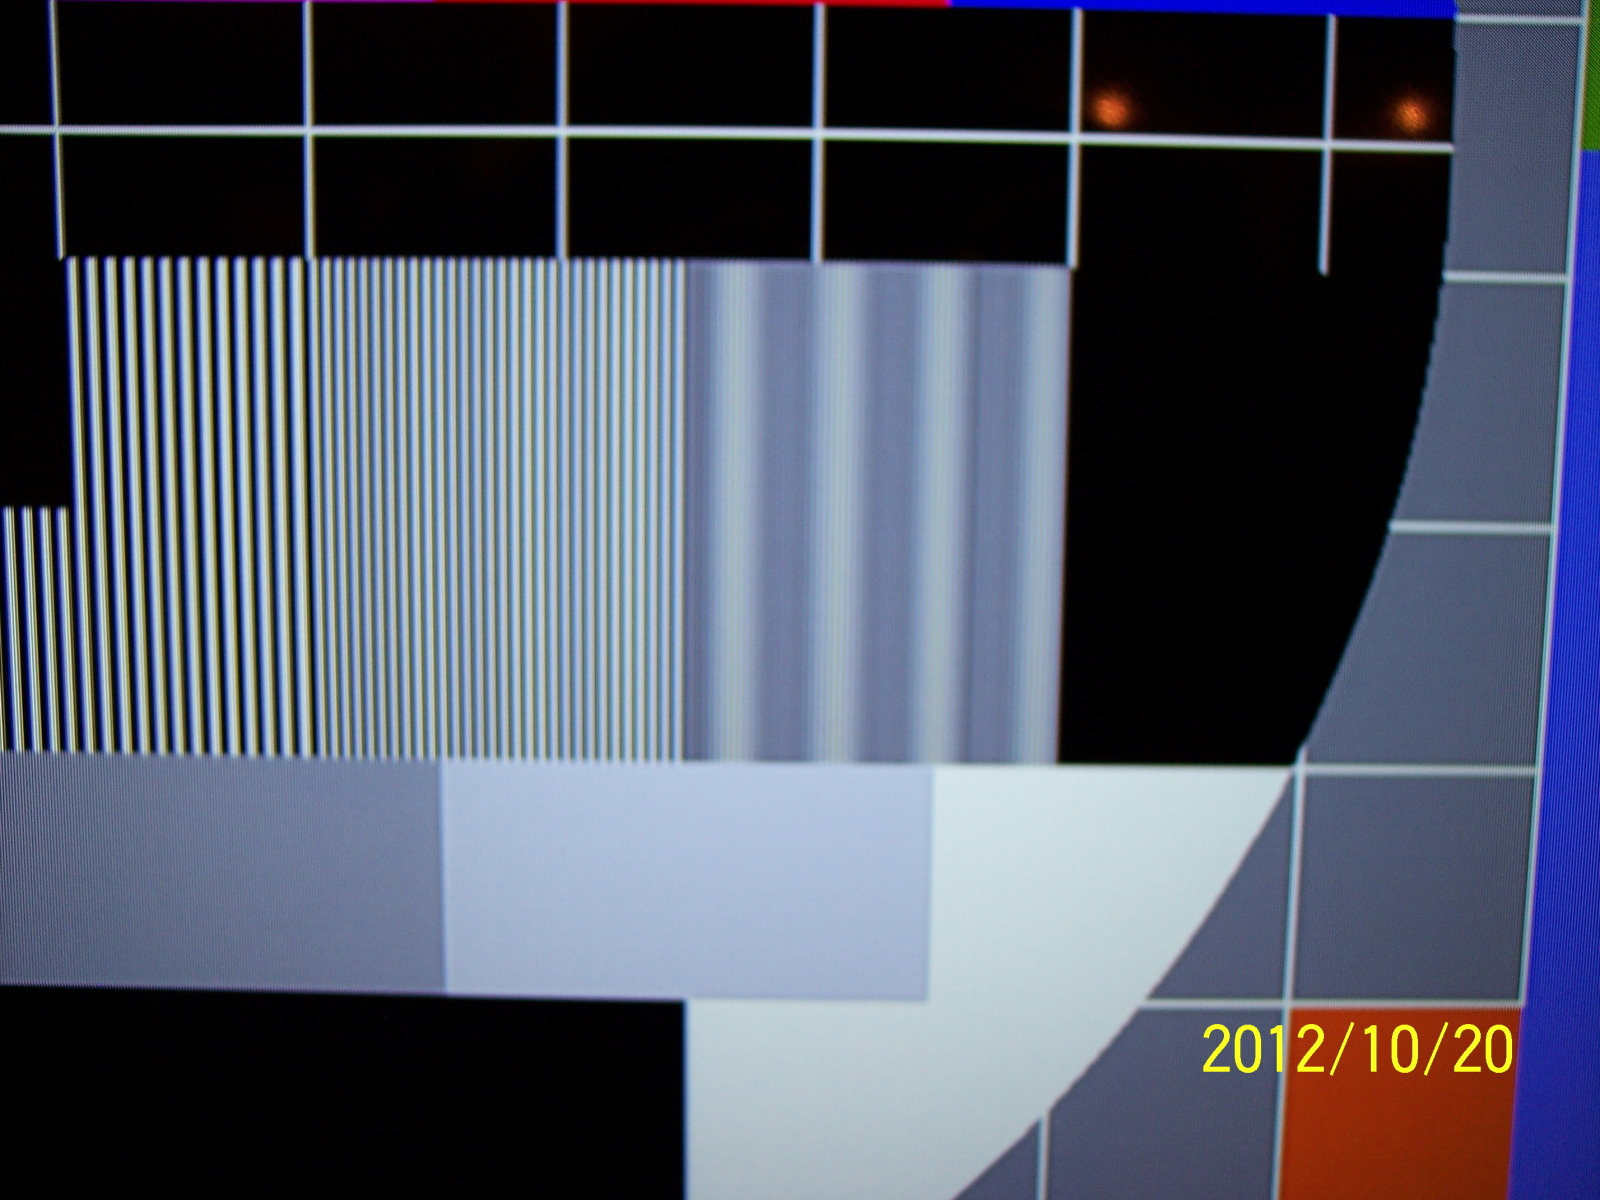 No image on display while cloned with the TV, but with image on TV b49u9i.jpg